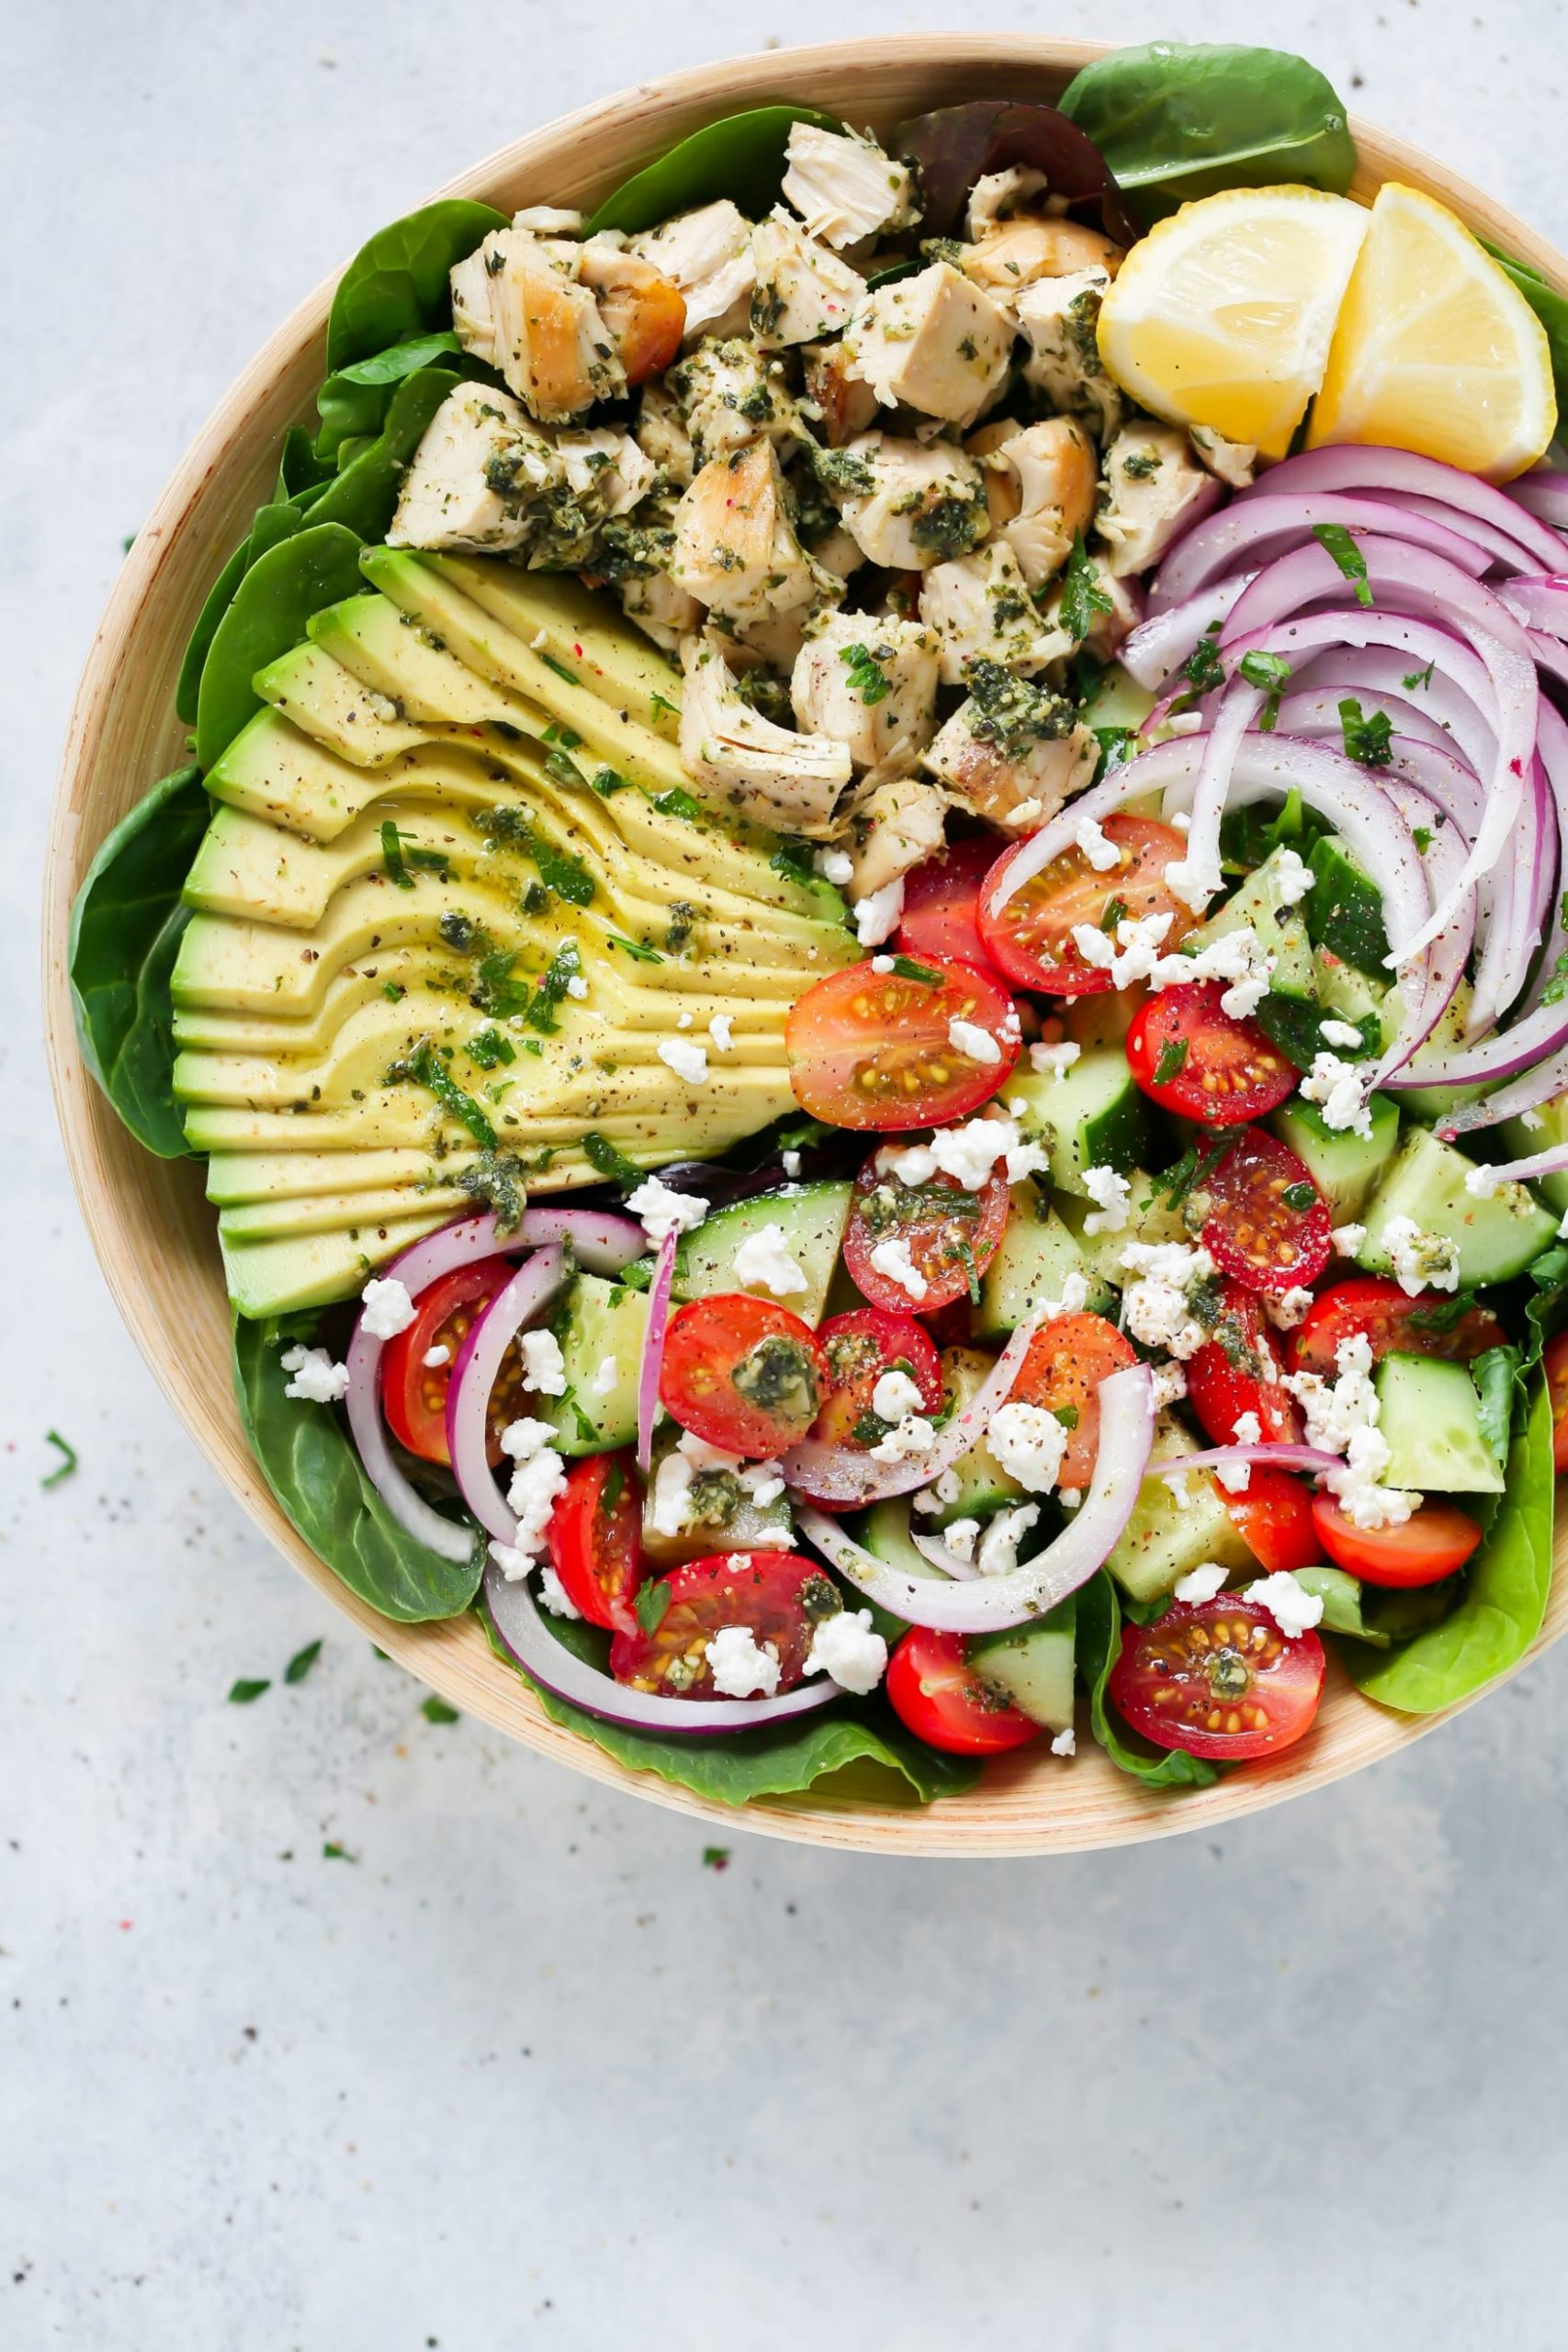 10 Super Easy Low-carb Salads For Lunch - Primavera Kitchen